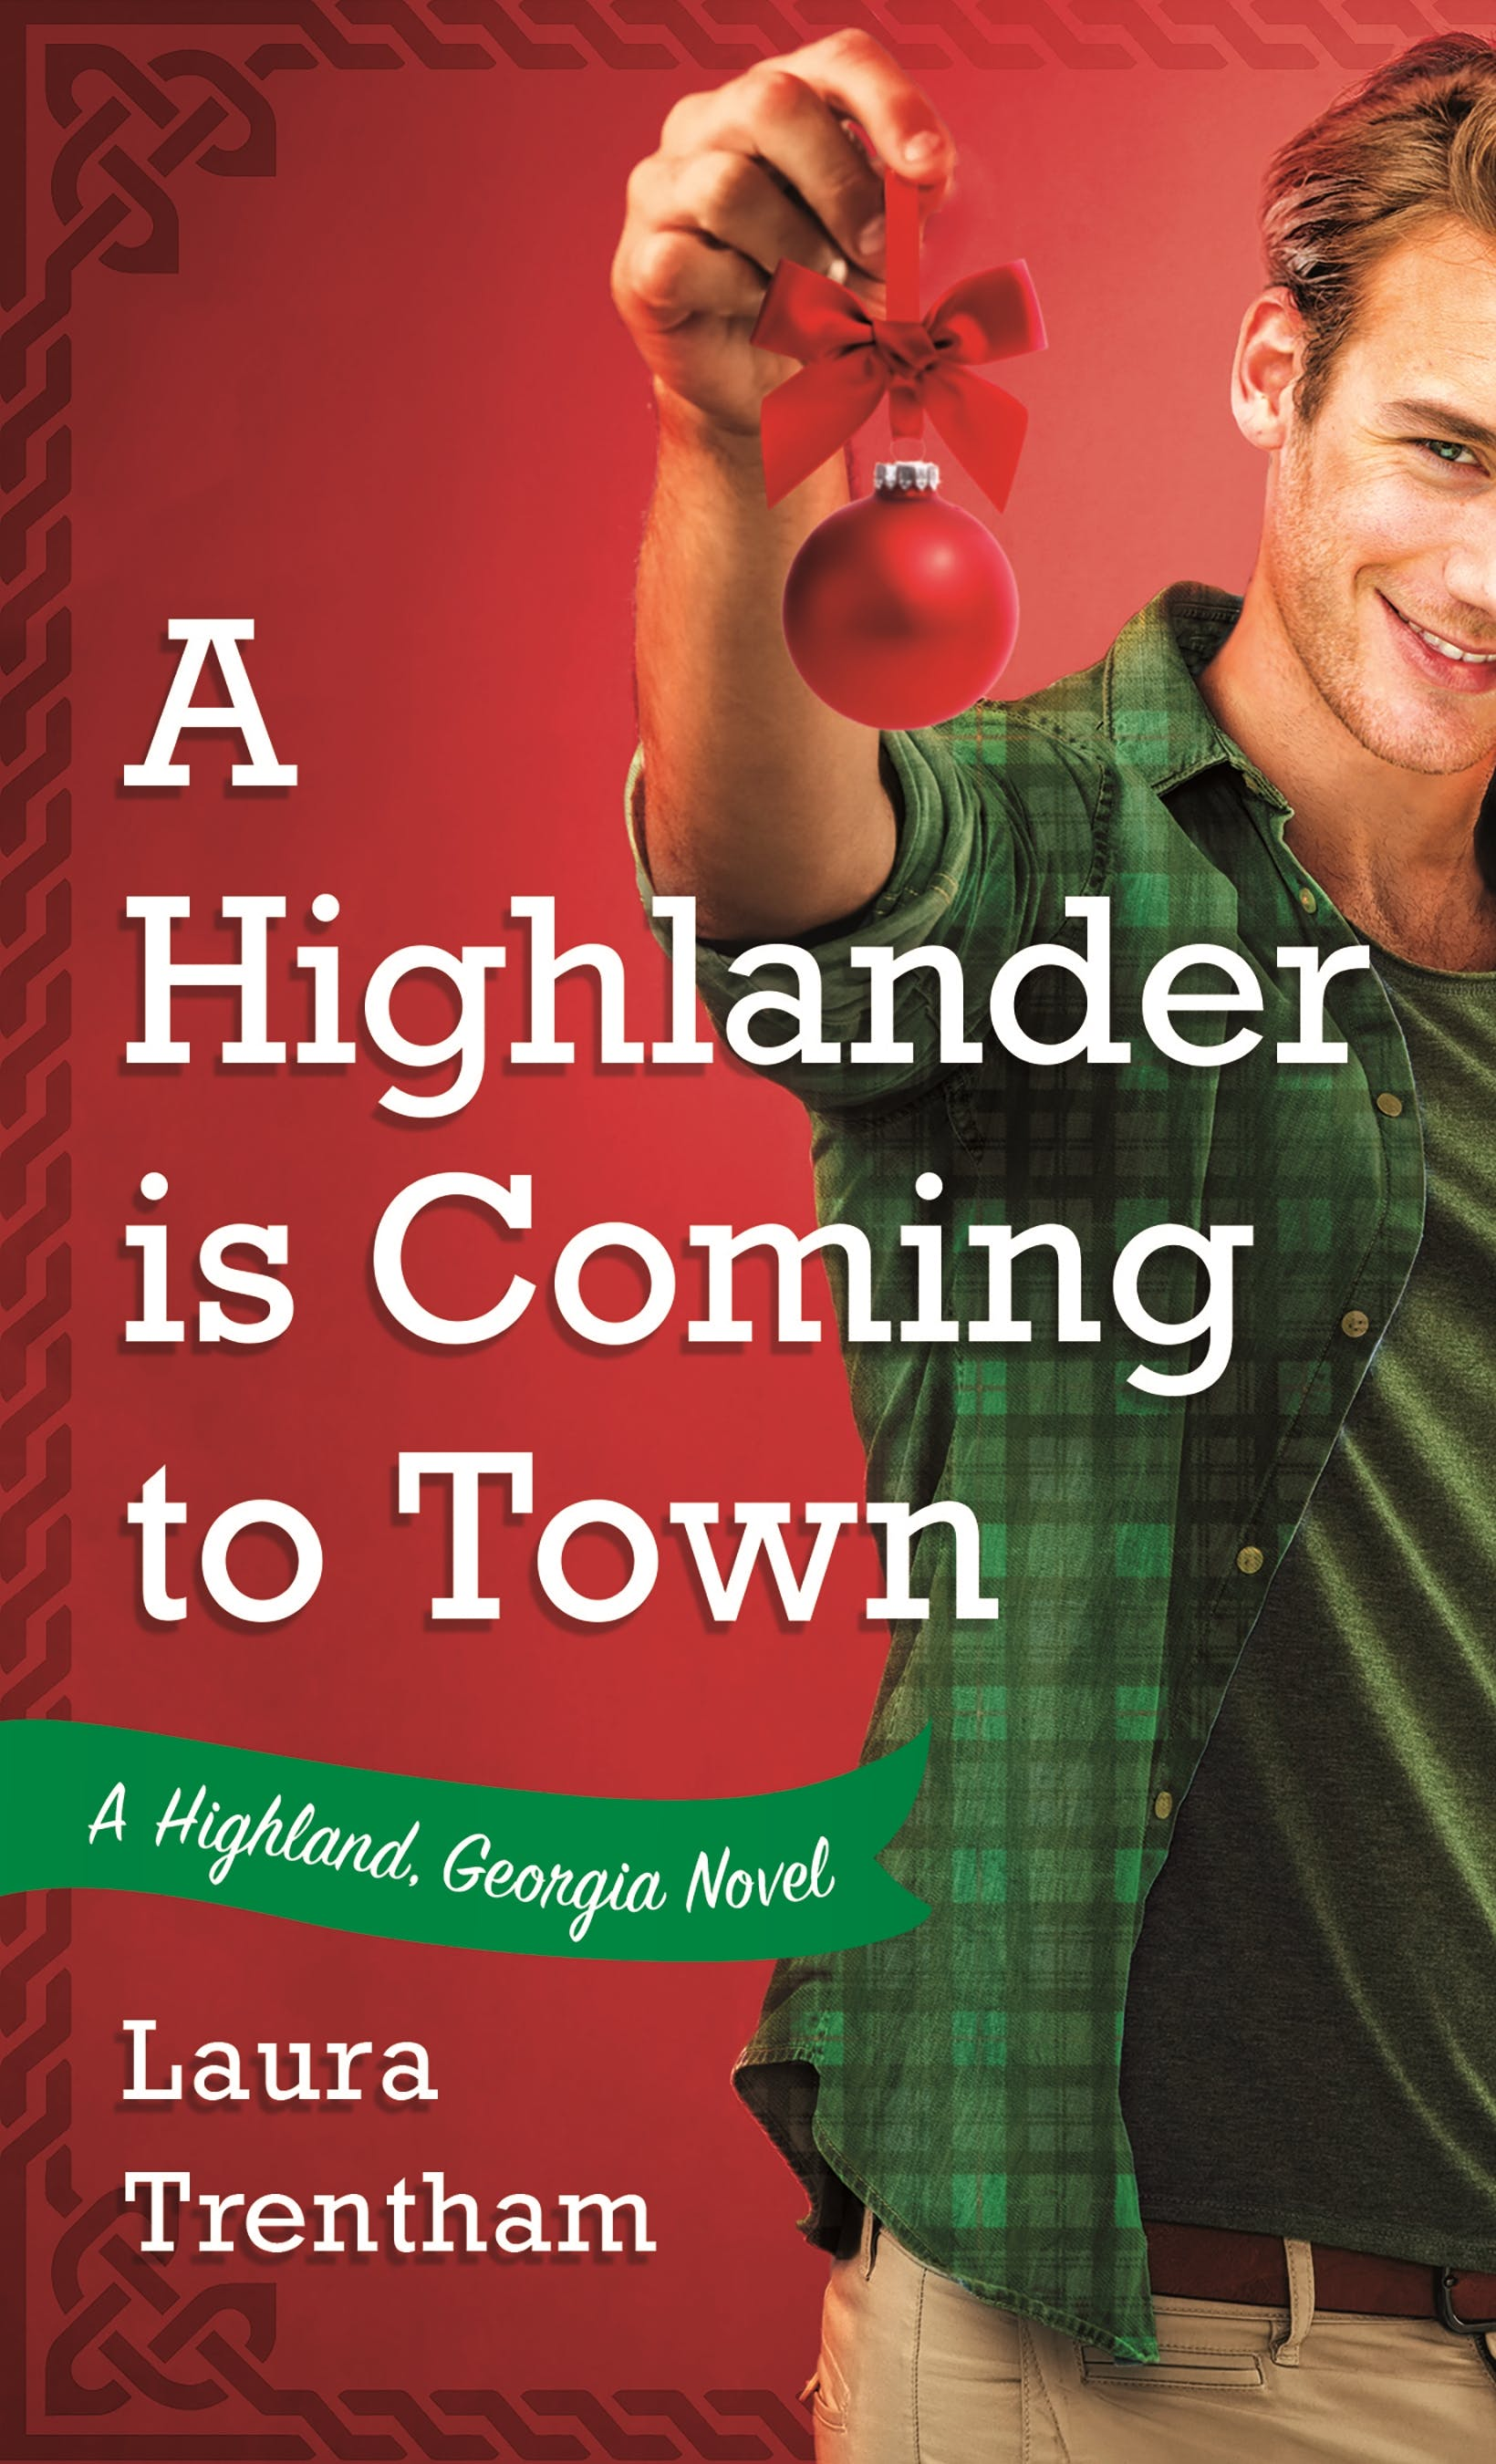 Image of A Highlander is Coming to Town